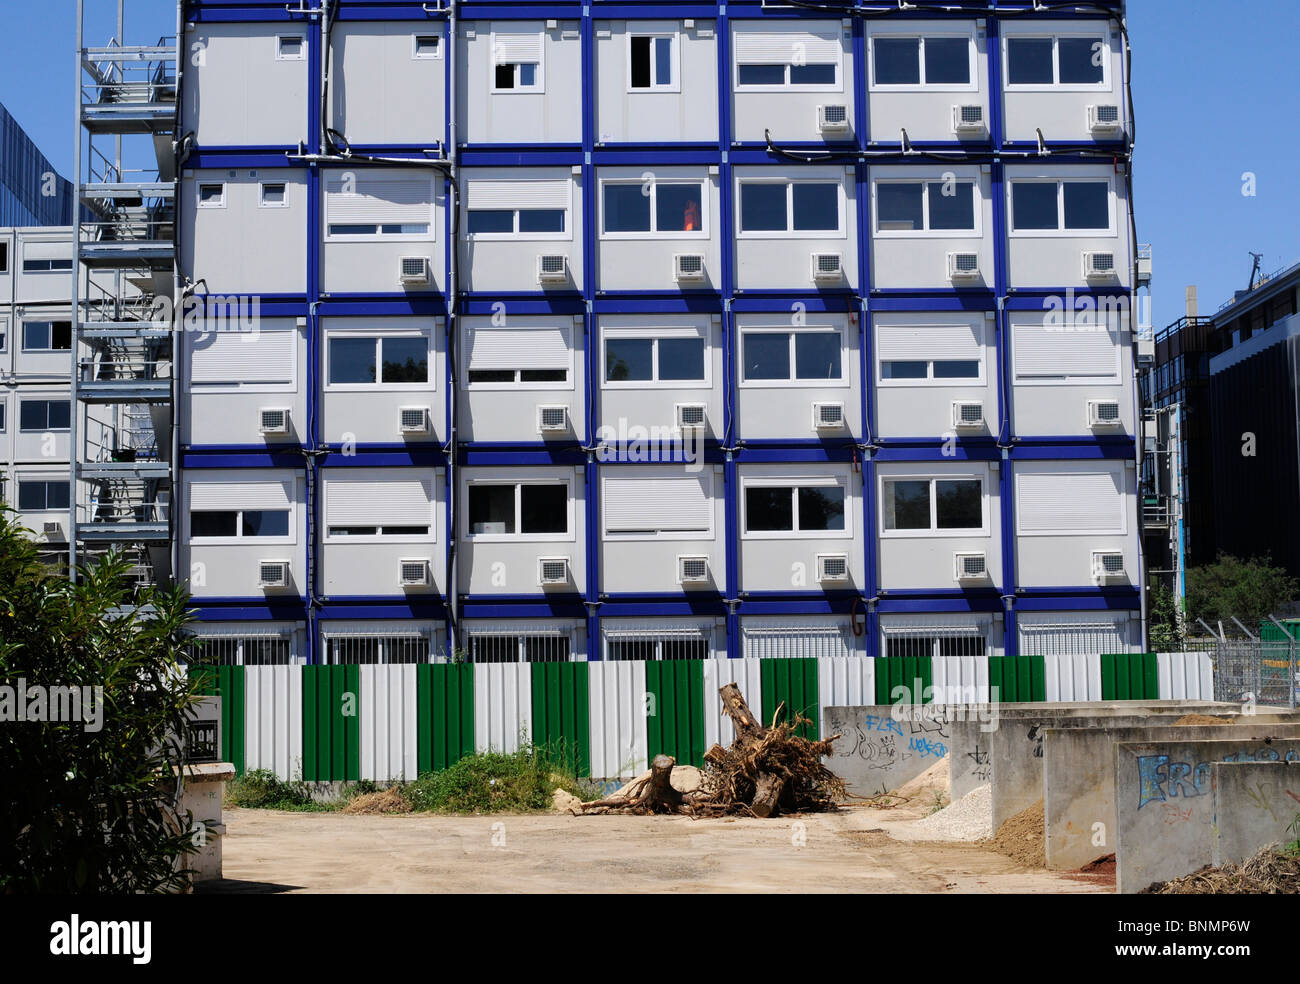 Temporary housing for construction workers made out of shipping containers in Paris, France. Stock Photo